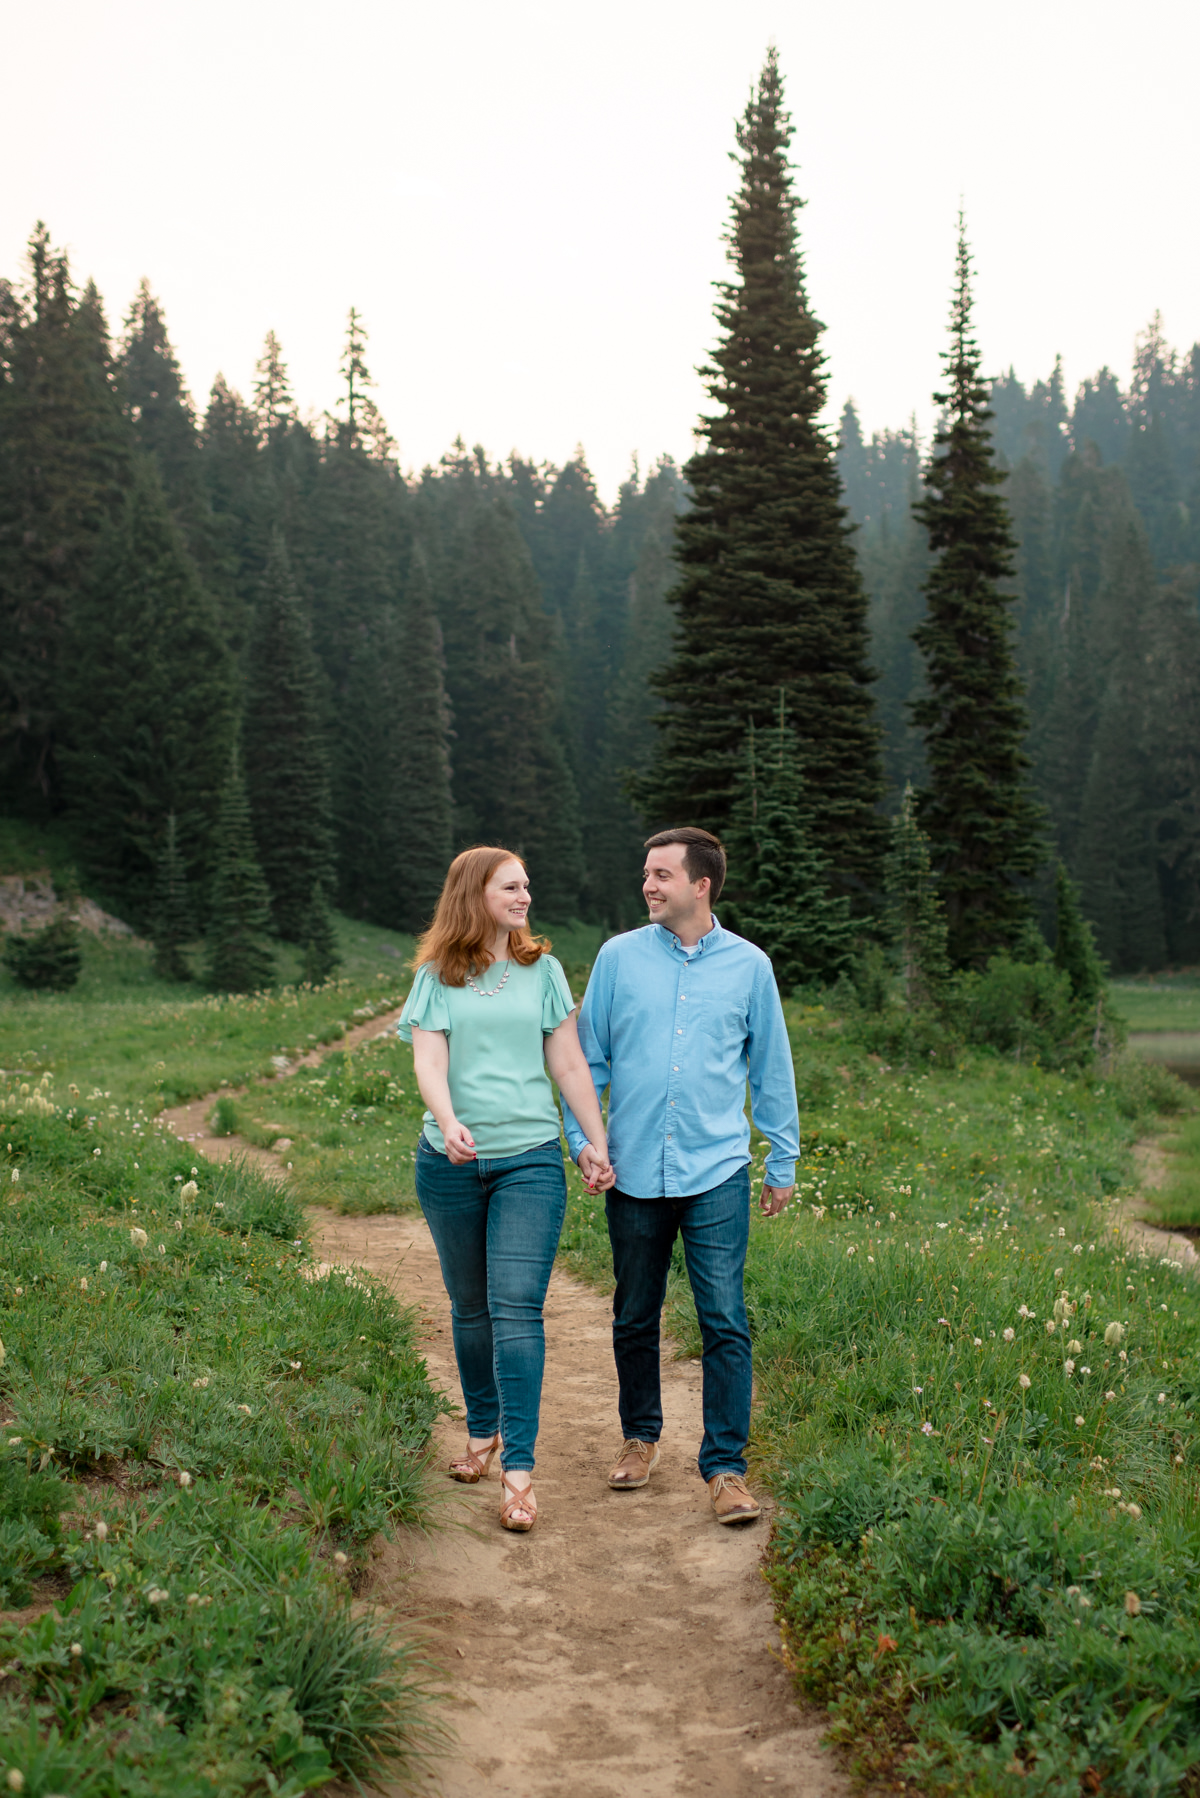 Andrew Tat - Documentary Wedding Photography - Tipsoo Lake - Mount Rainier National Park, Washington - Erin & Robert - 11.JPG